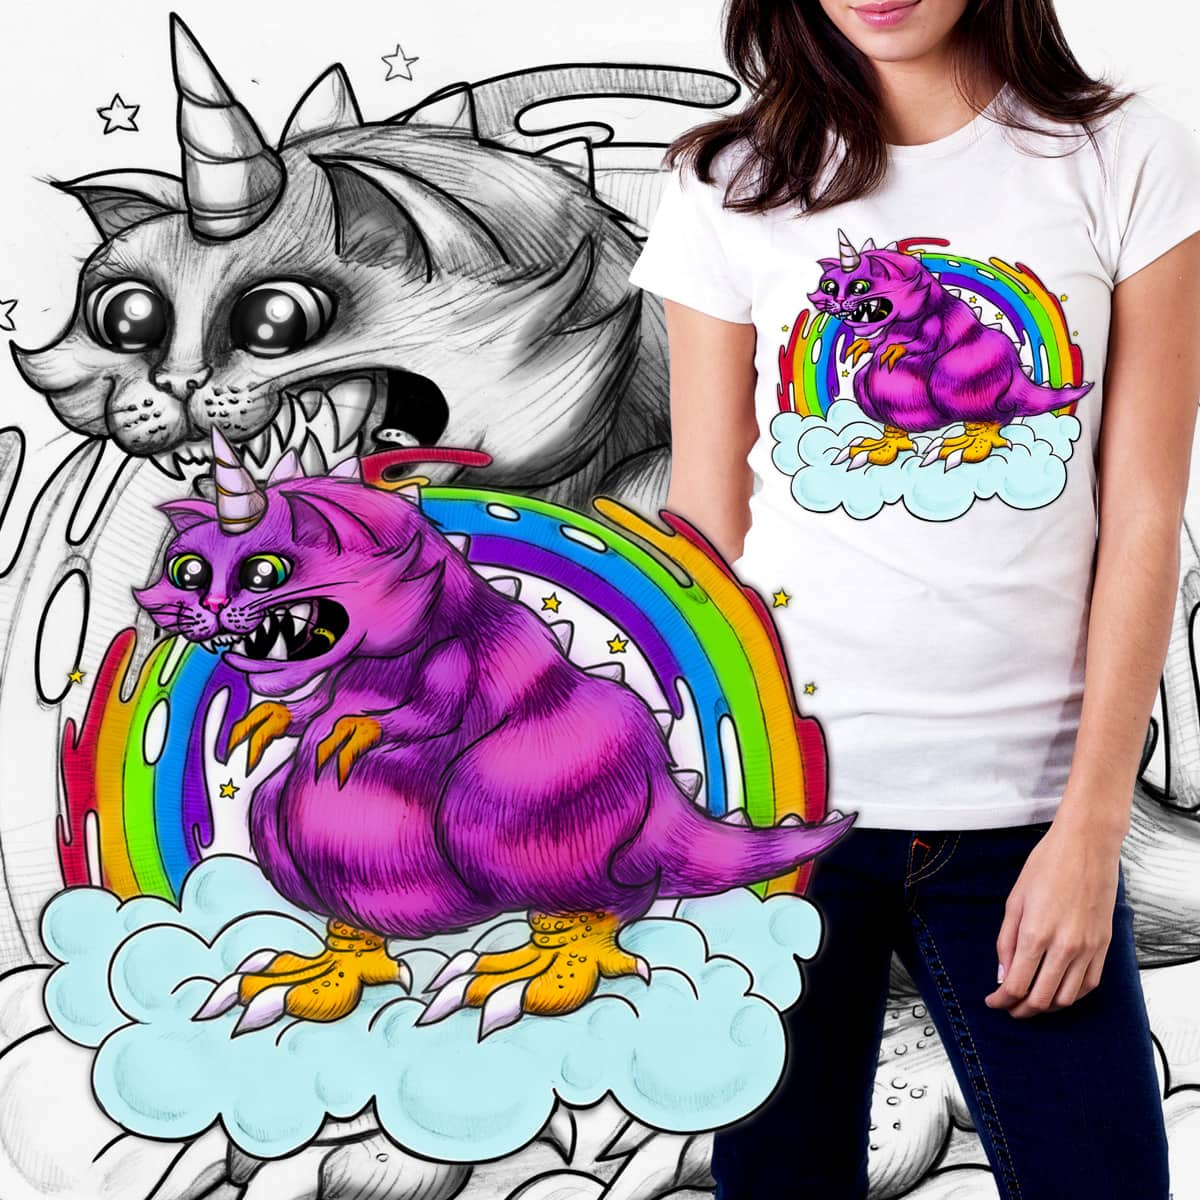 An Abomination of Awesome by Helenasia on Threadless